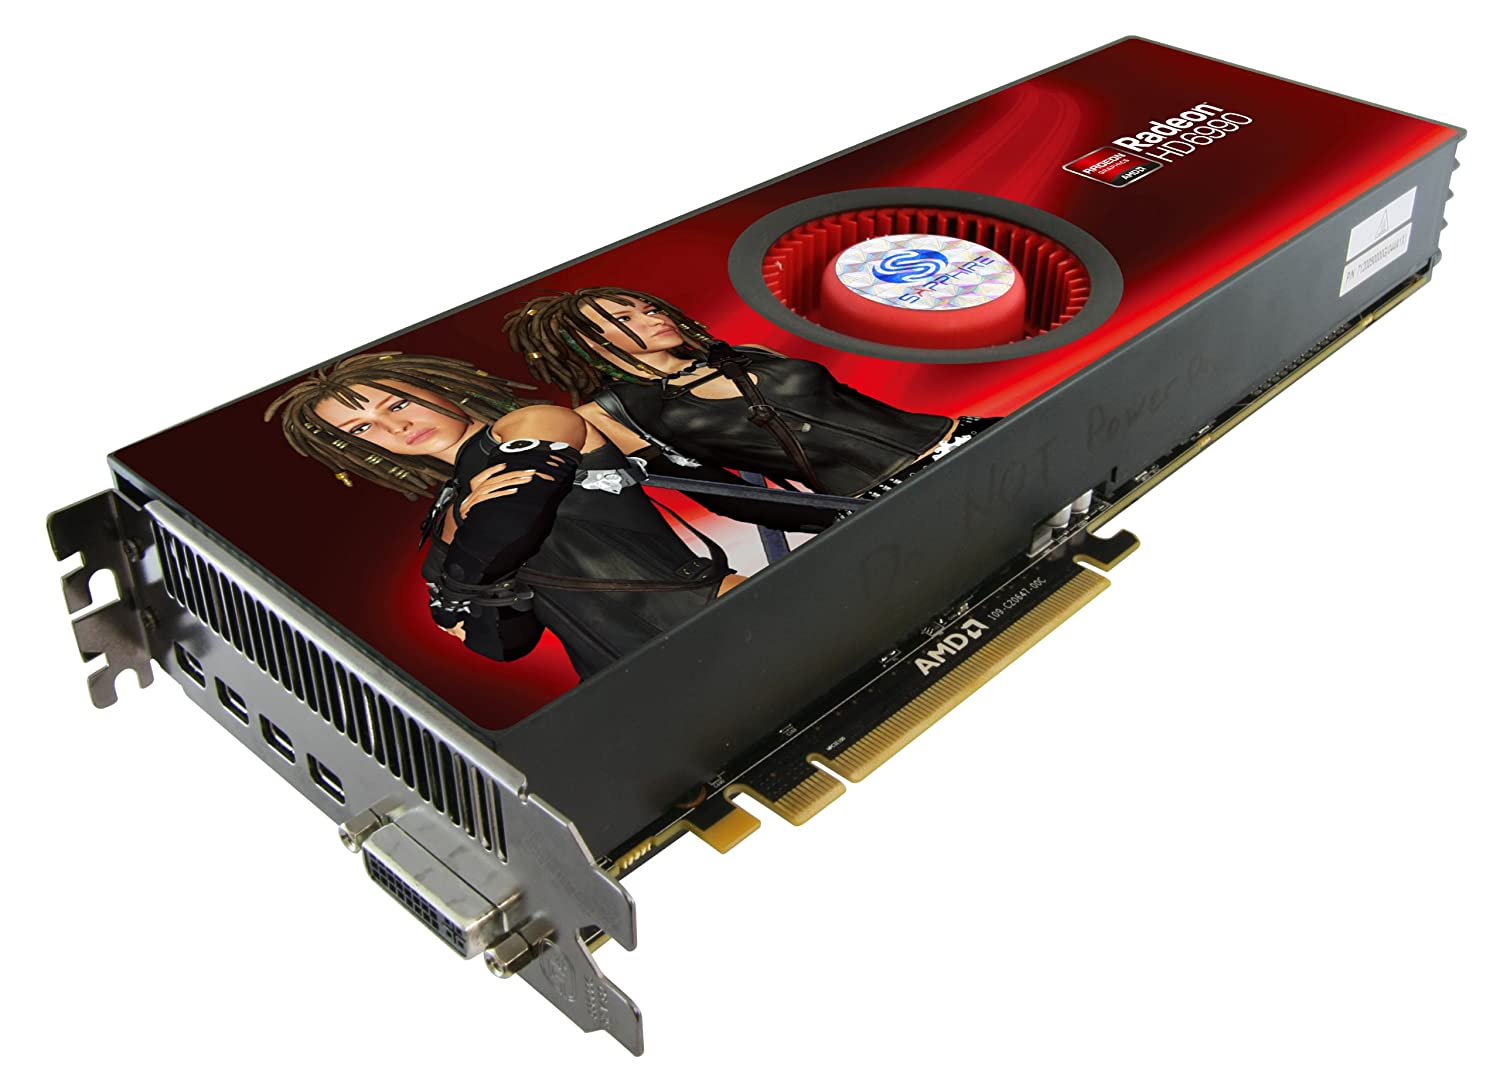 Amazon.com: Sapphire Radeon HD 6990 4 GB ddr5 DVI-I/Quad ...